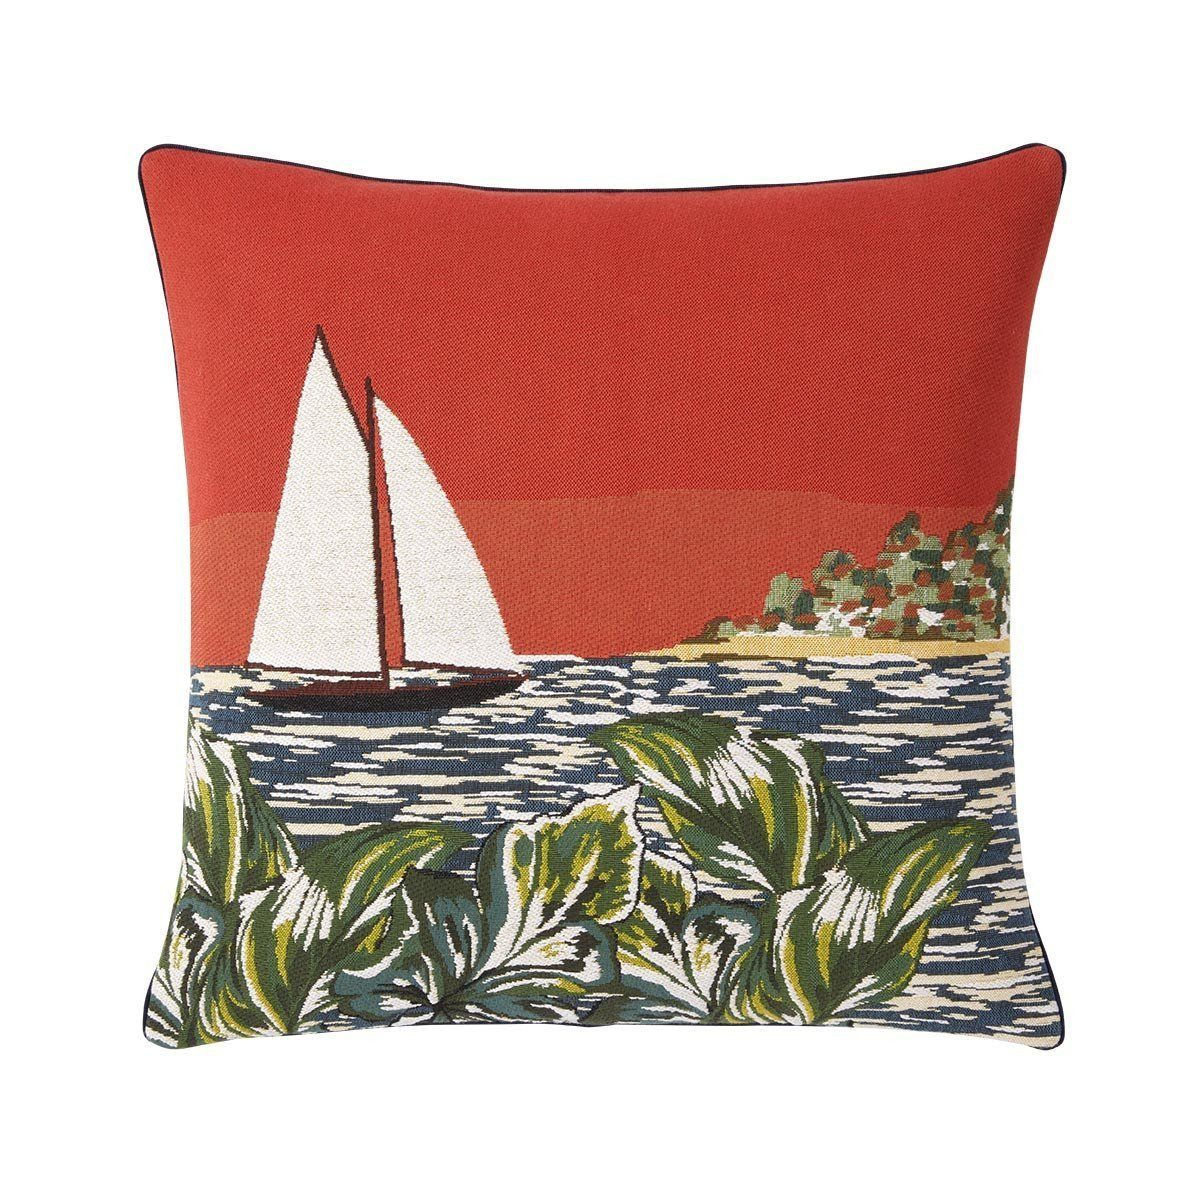 Libertad Corail Decorative Pillow by Iosis